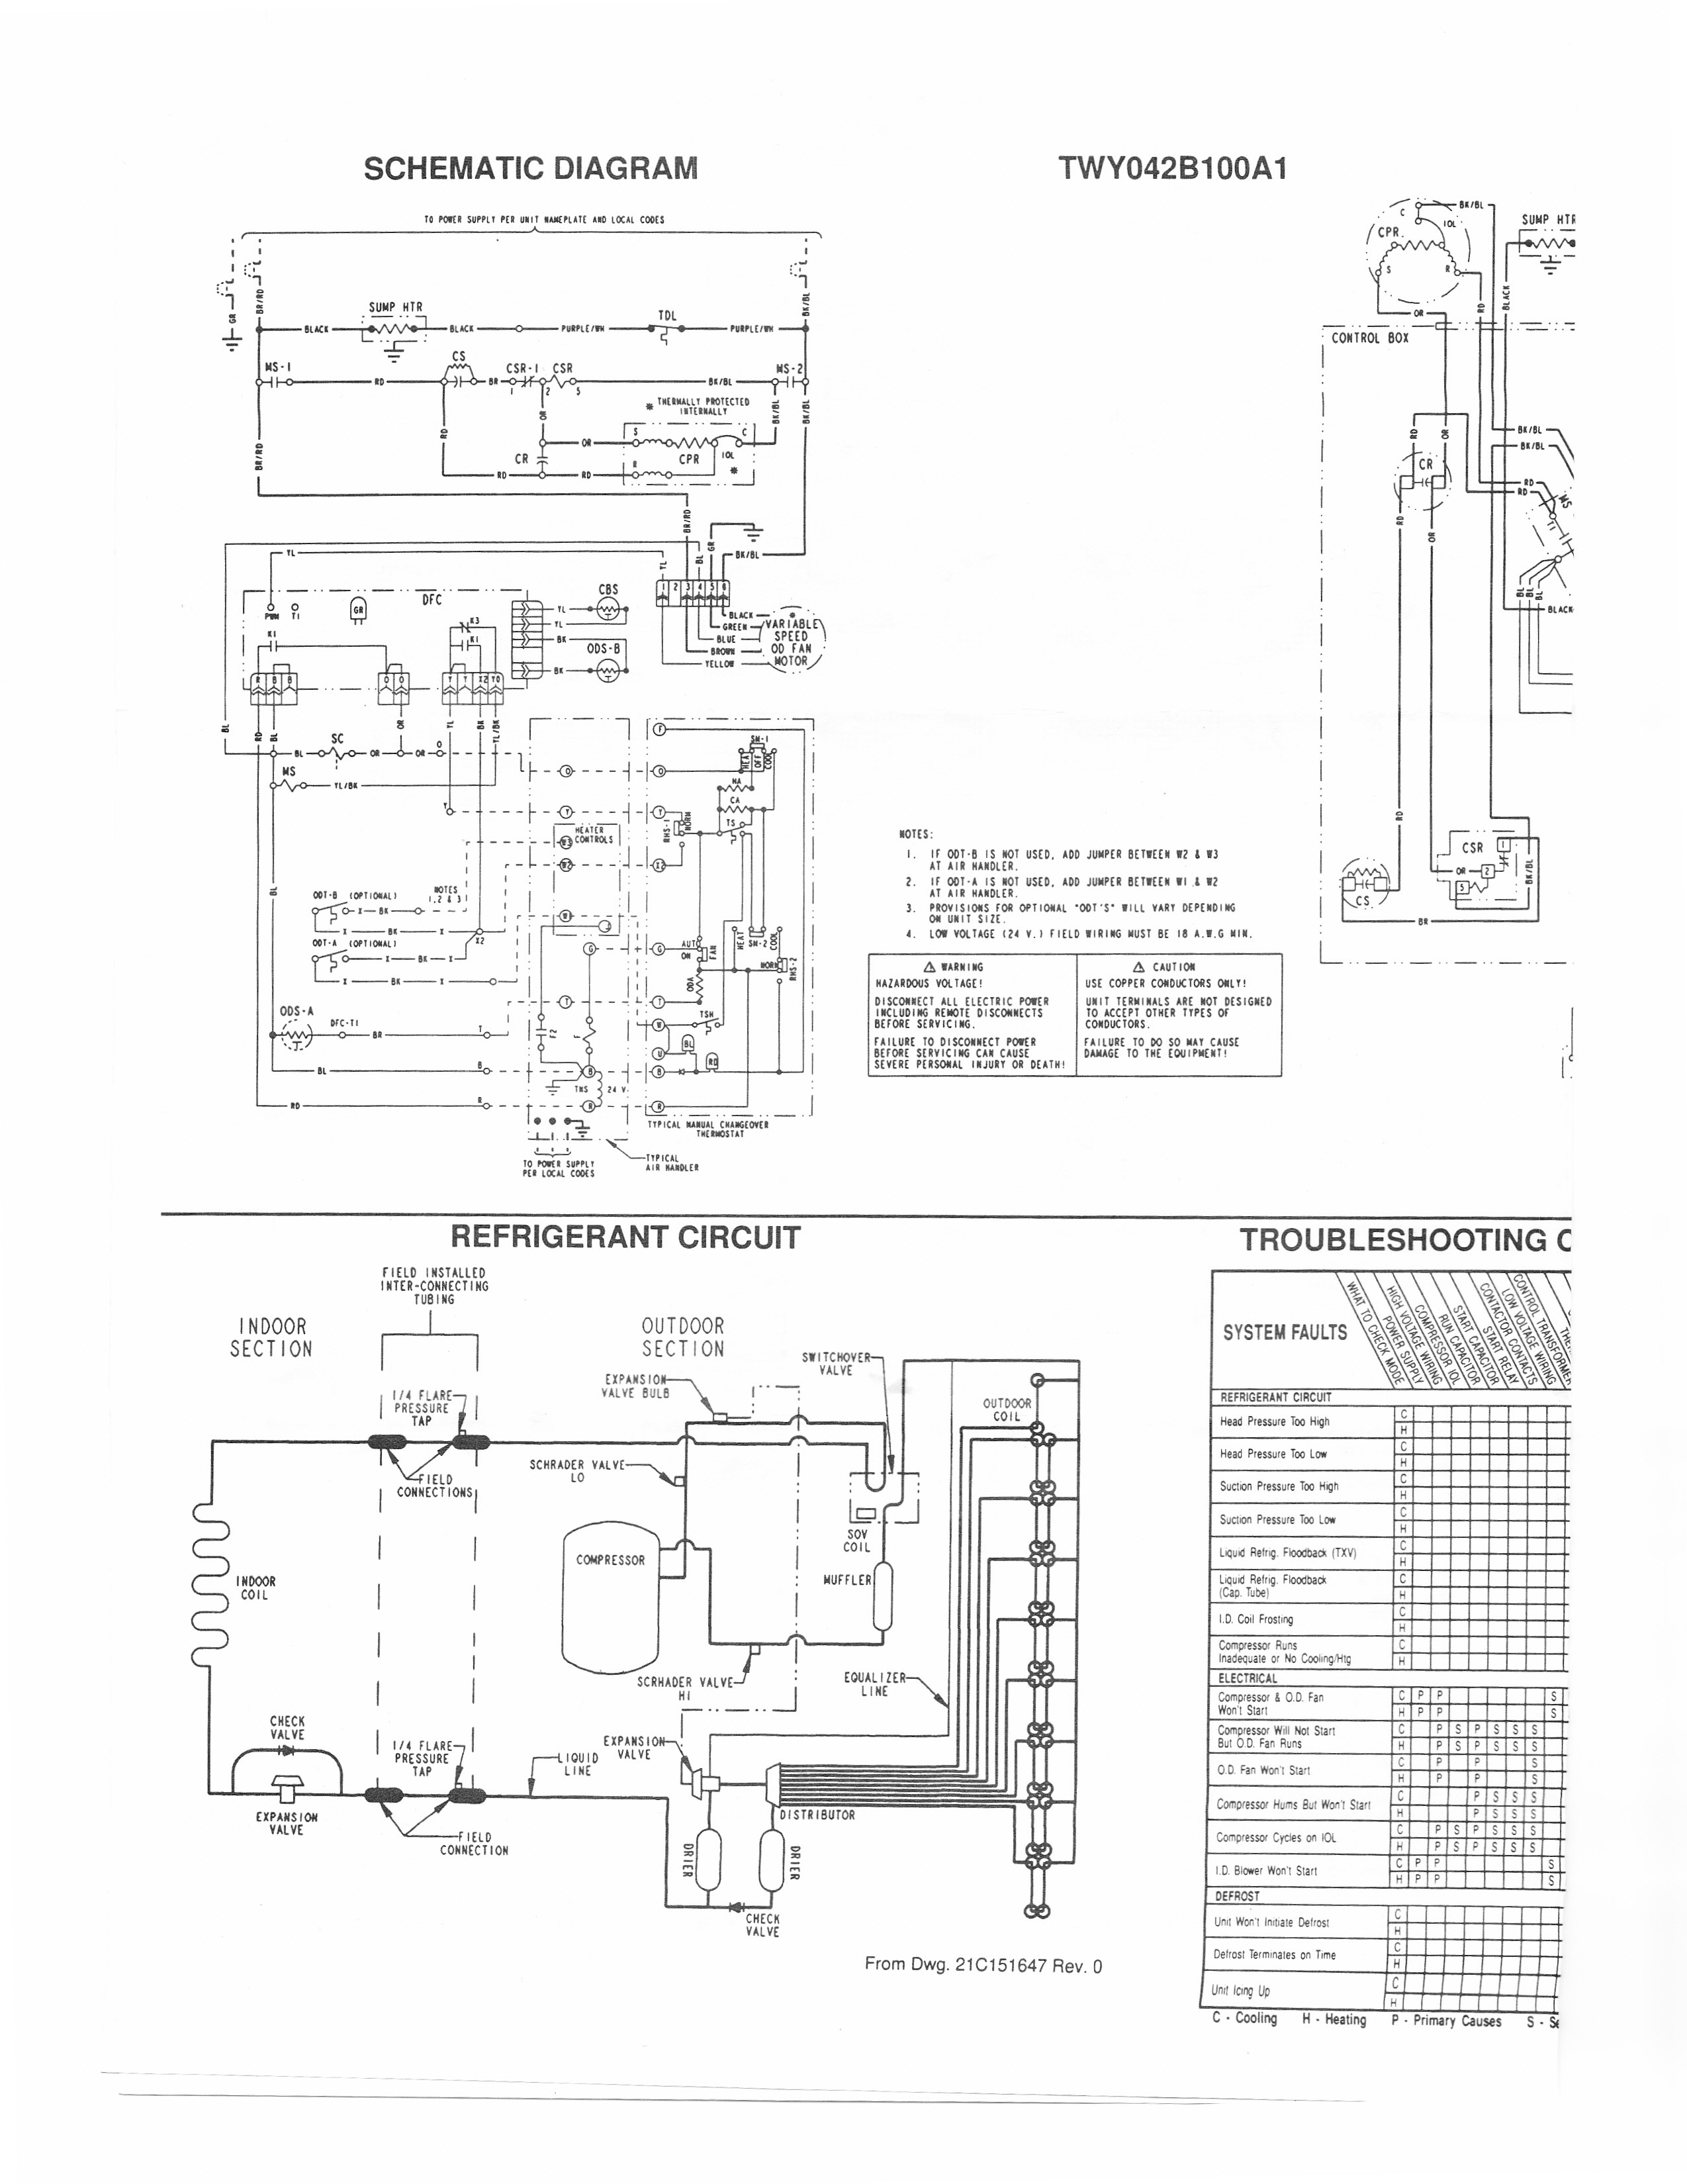 Trane Air Conditioner Wiring Schematic Handler Diagram For Solidfonts New Heat Pump And Thermostat For Trane Wiring Diagram